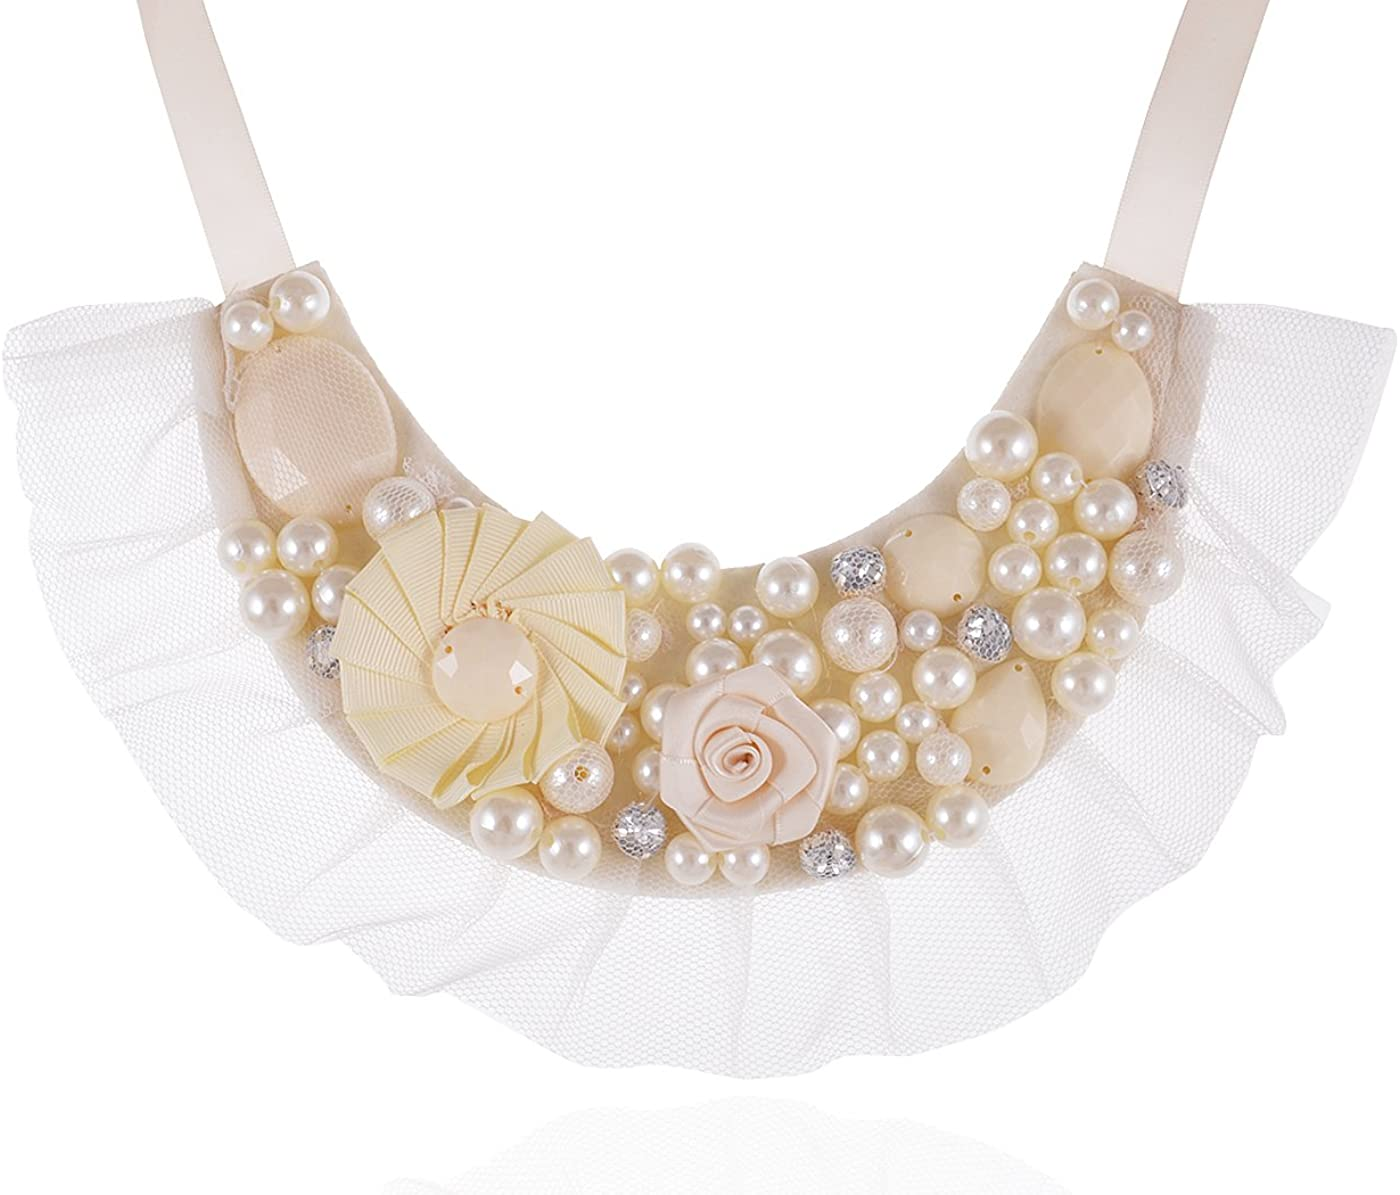 Alilang Women?s Girly Faux Ivory Pearls Floral Beads Gothic Lolita Bridal Costume Fabric Bib Collar Necklace